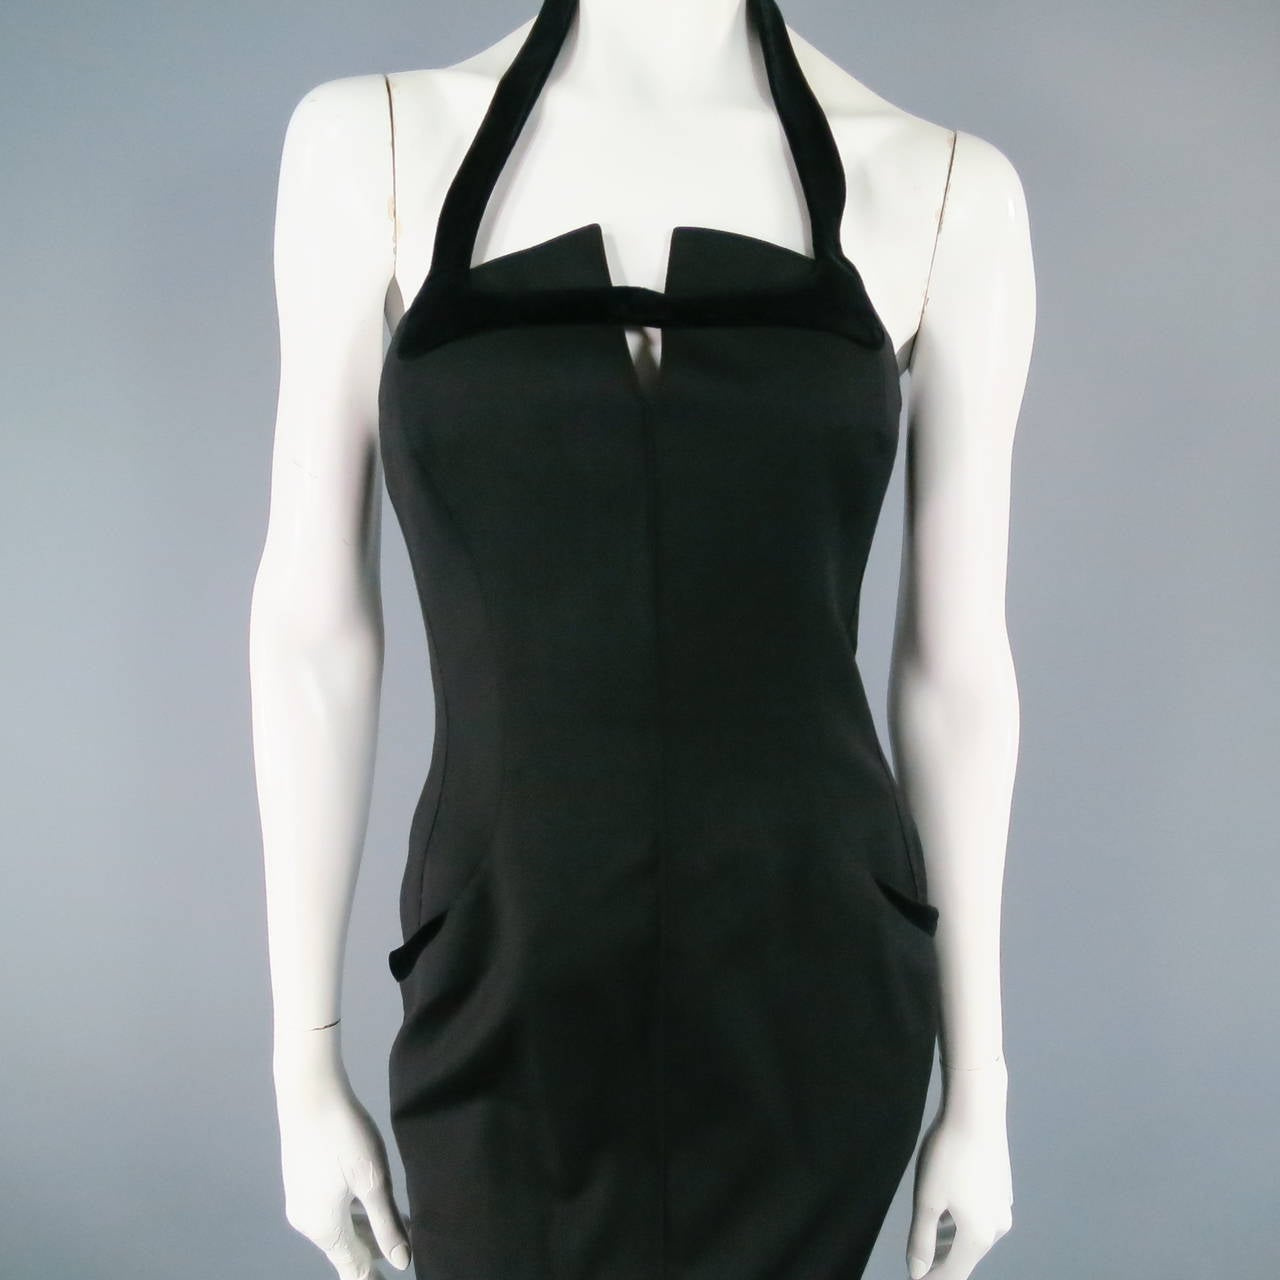 THIERRY MUGLER Size 6 Black Cotton/Wool Cocktail Dress 7